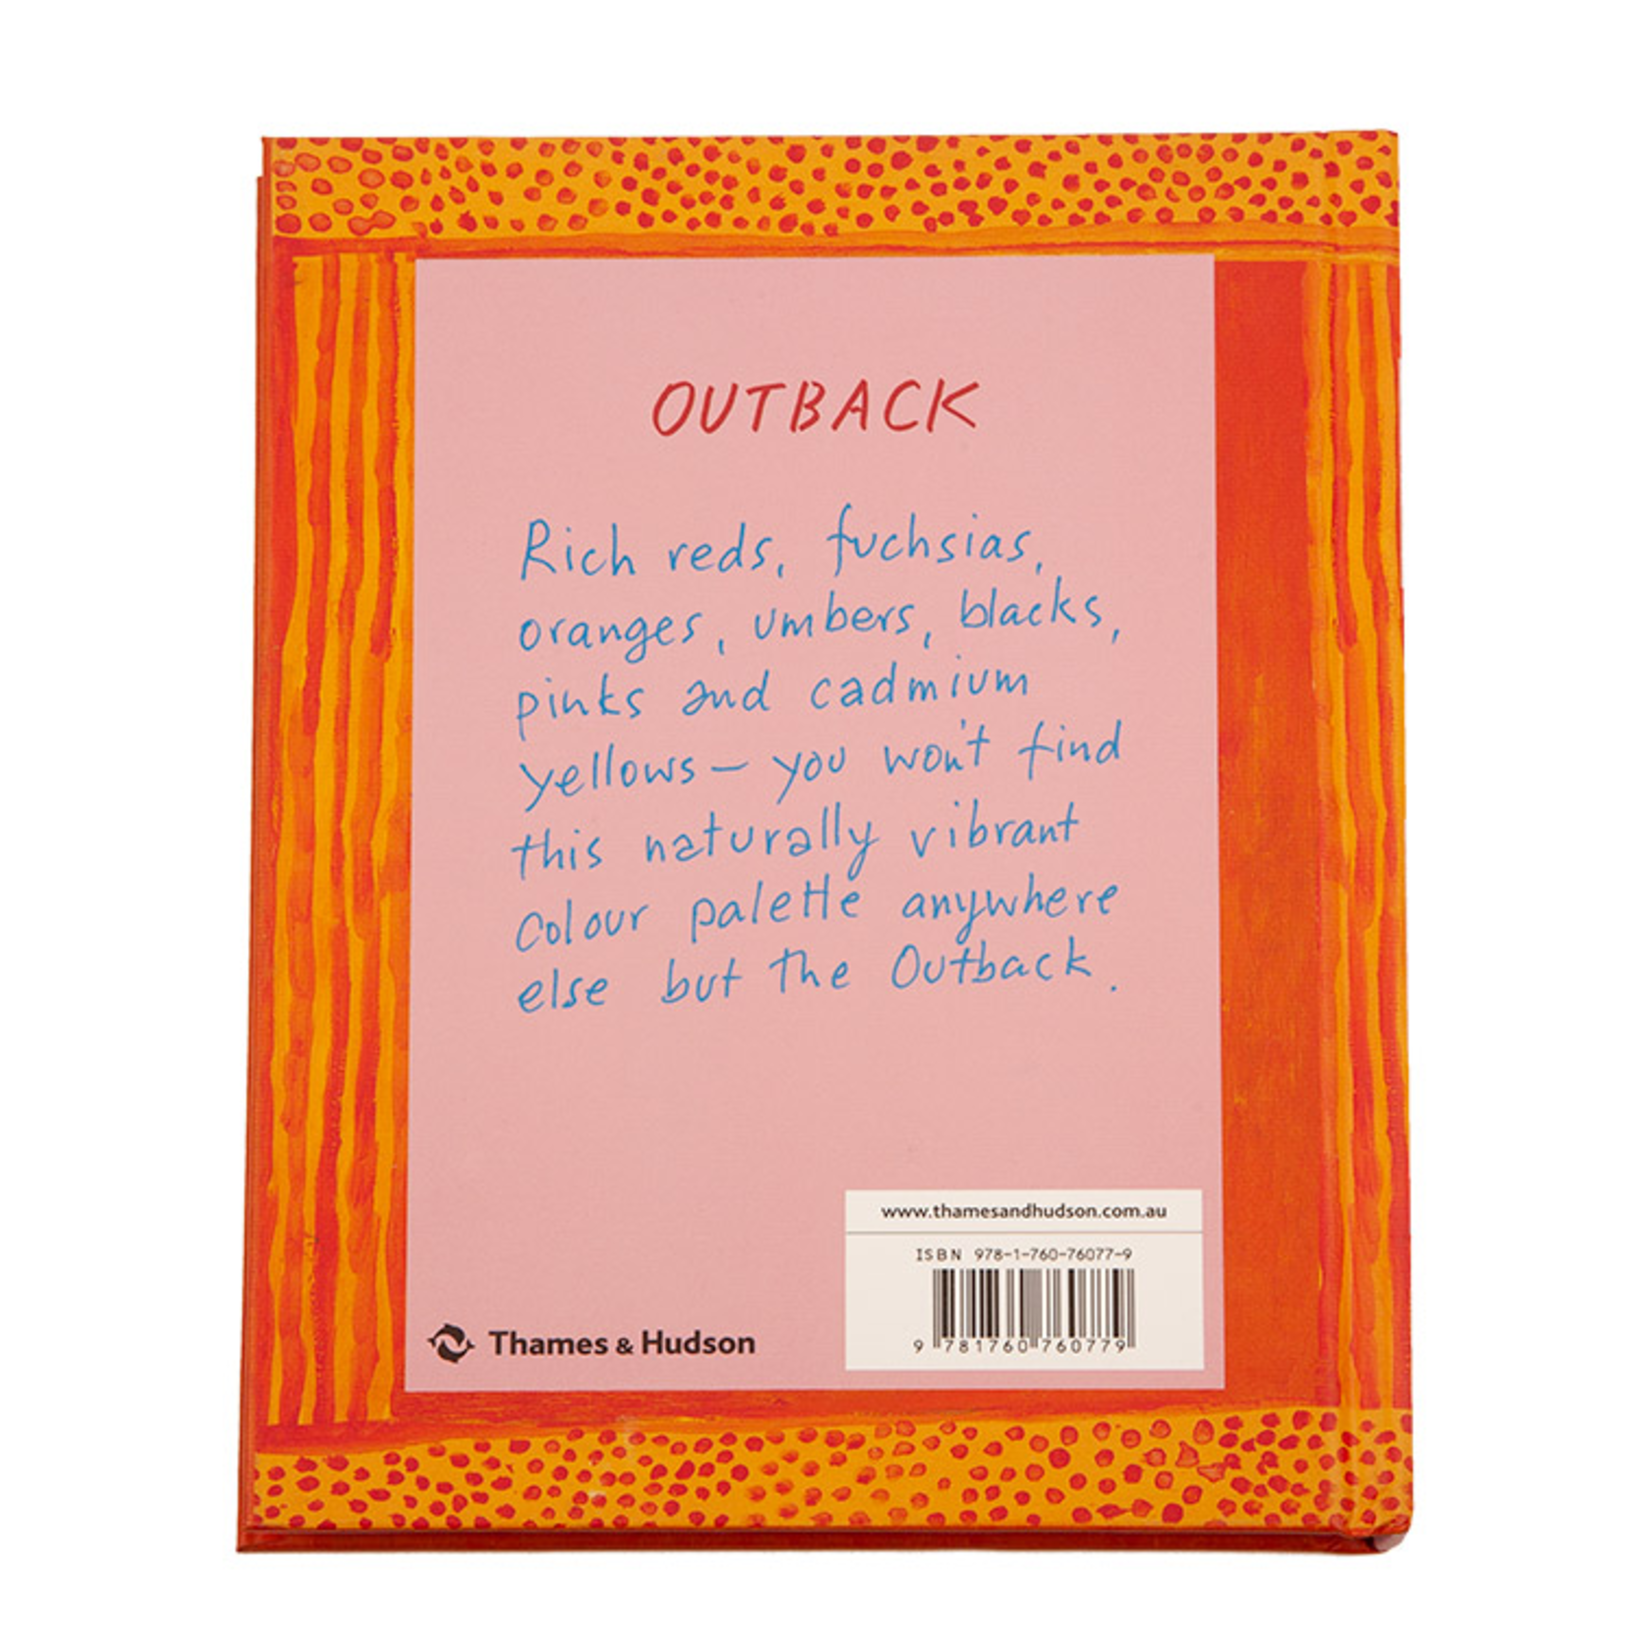 Books & Stationery Book - Ken Done - Outback - Hardcover mini book